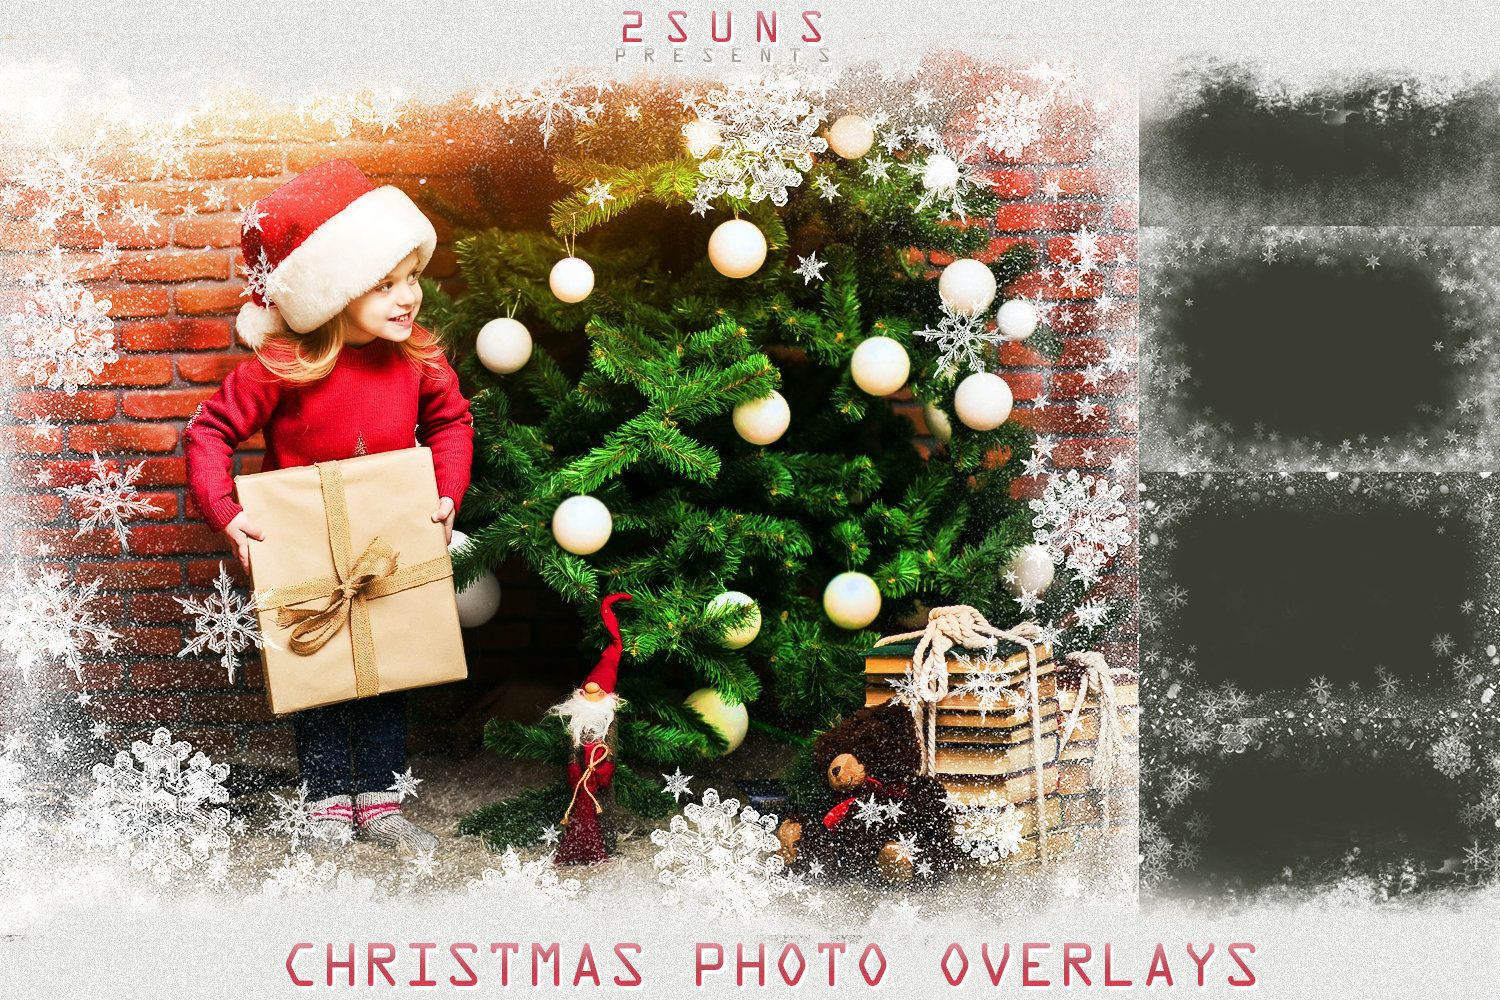 Download photo overlays, download textures photoshop.